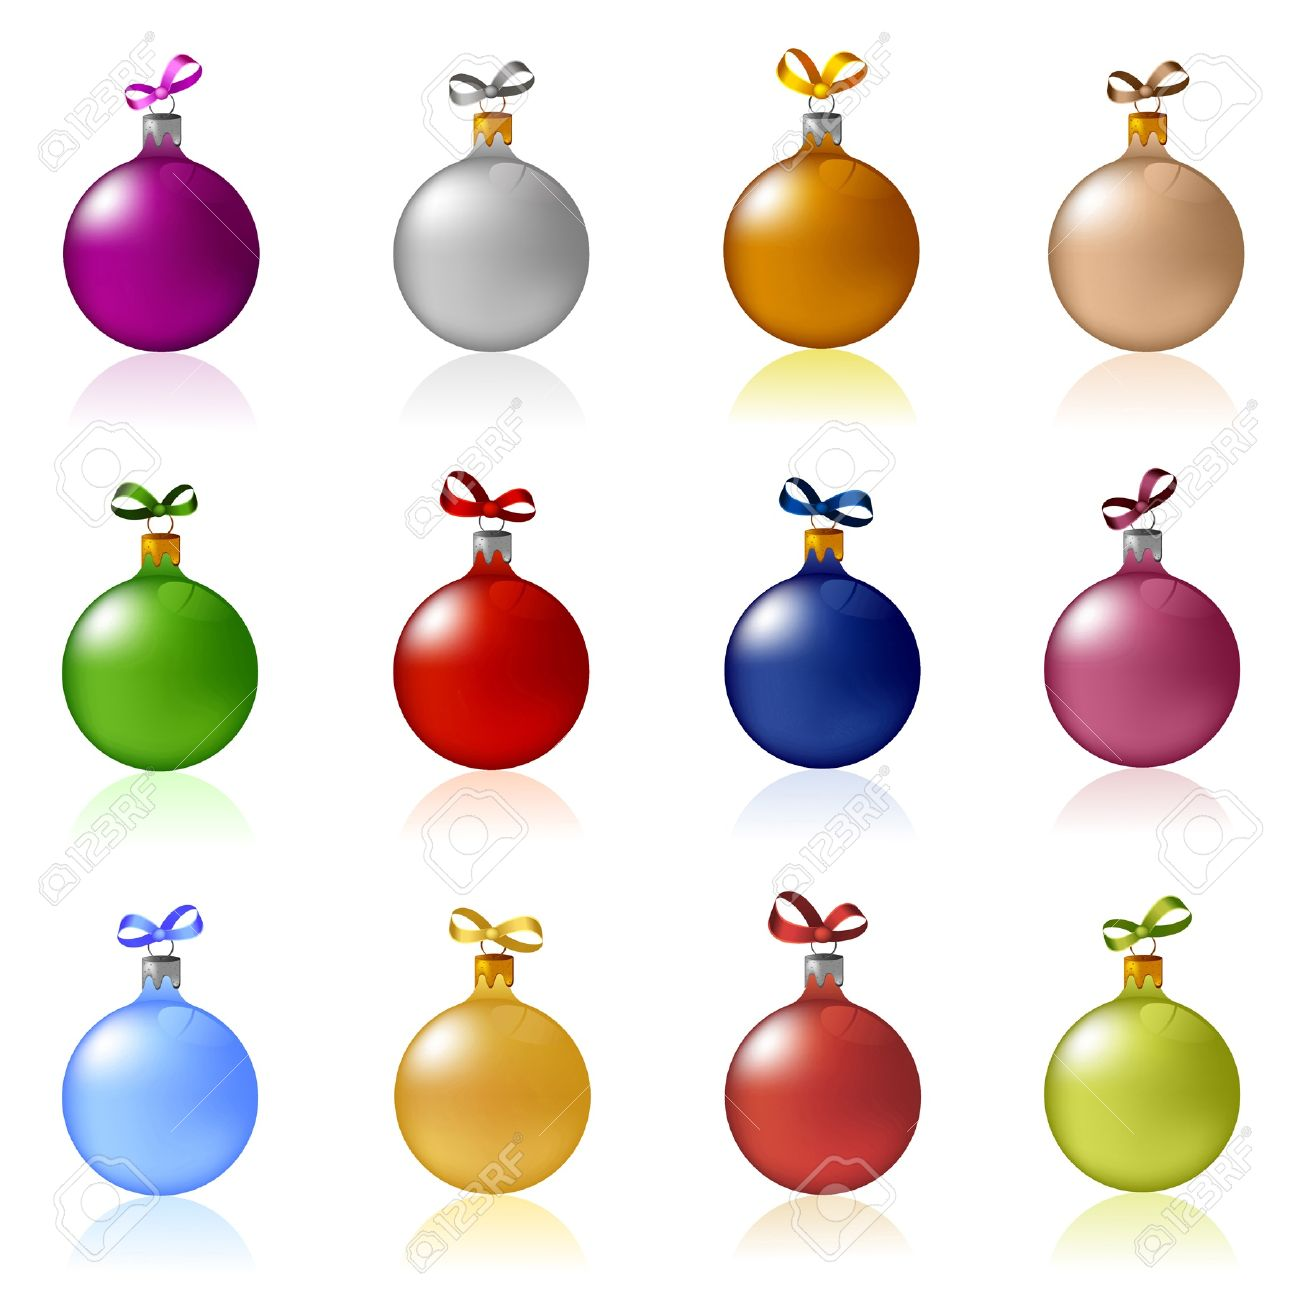 Christmas Ball Clipart.Clip Art Of Colorful Christmas Balls With Bows